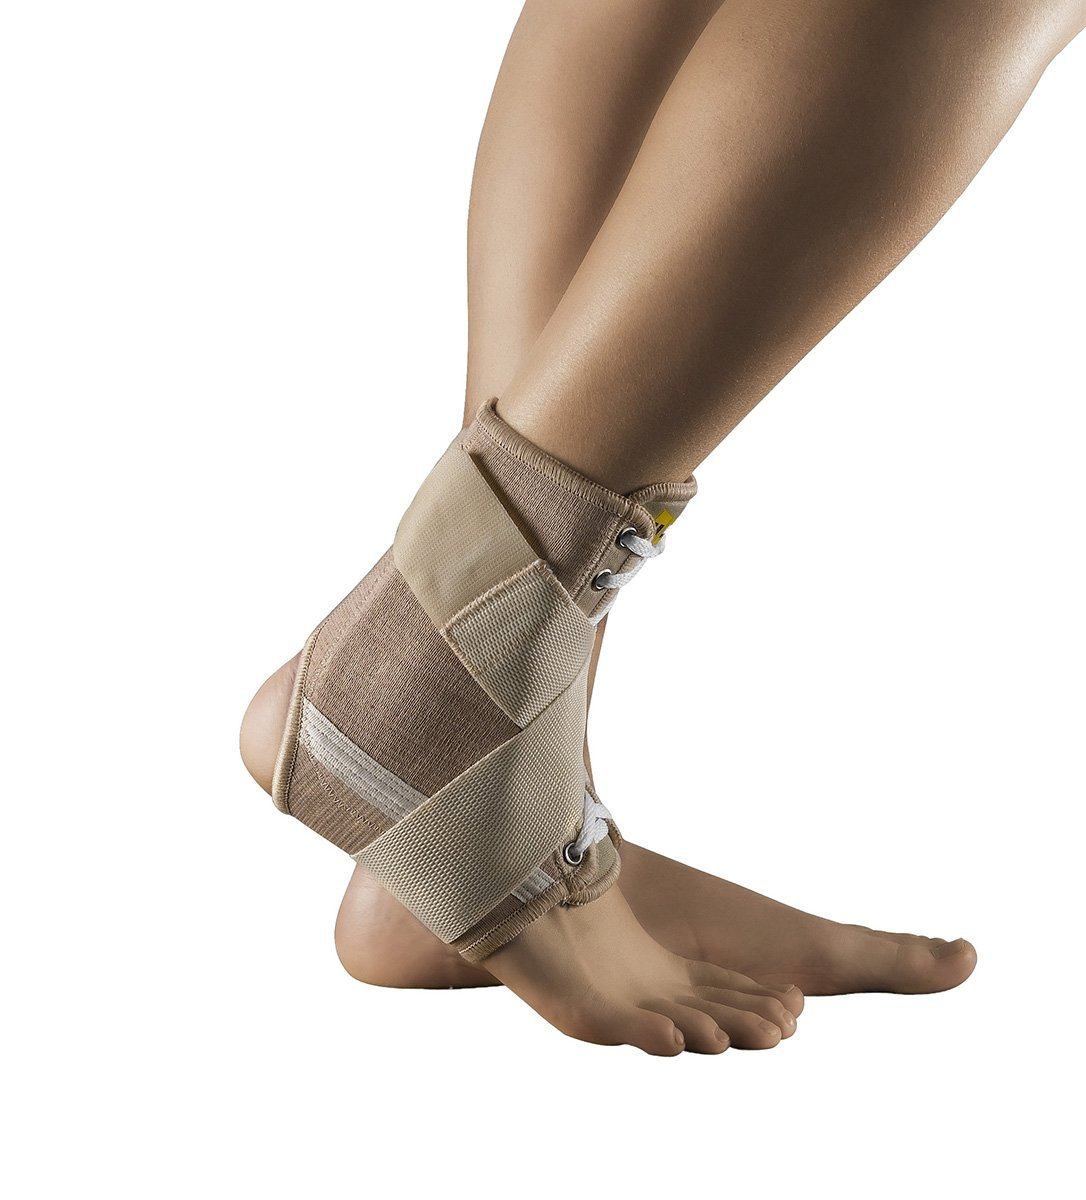 Uriel 24-9102 Year-end annual account Light Ankle Splint Courier shipping free Medium